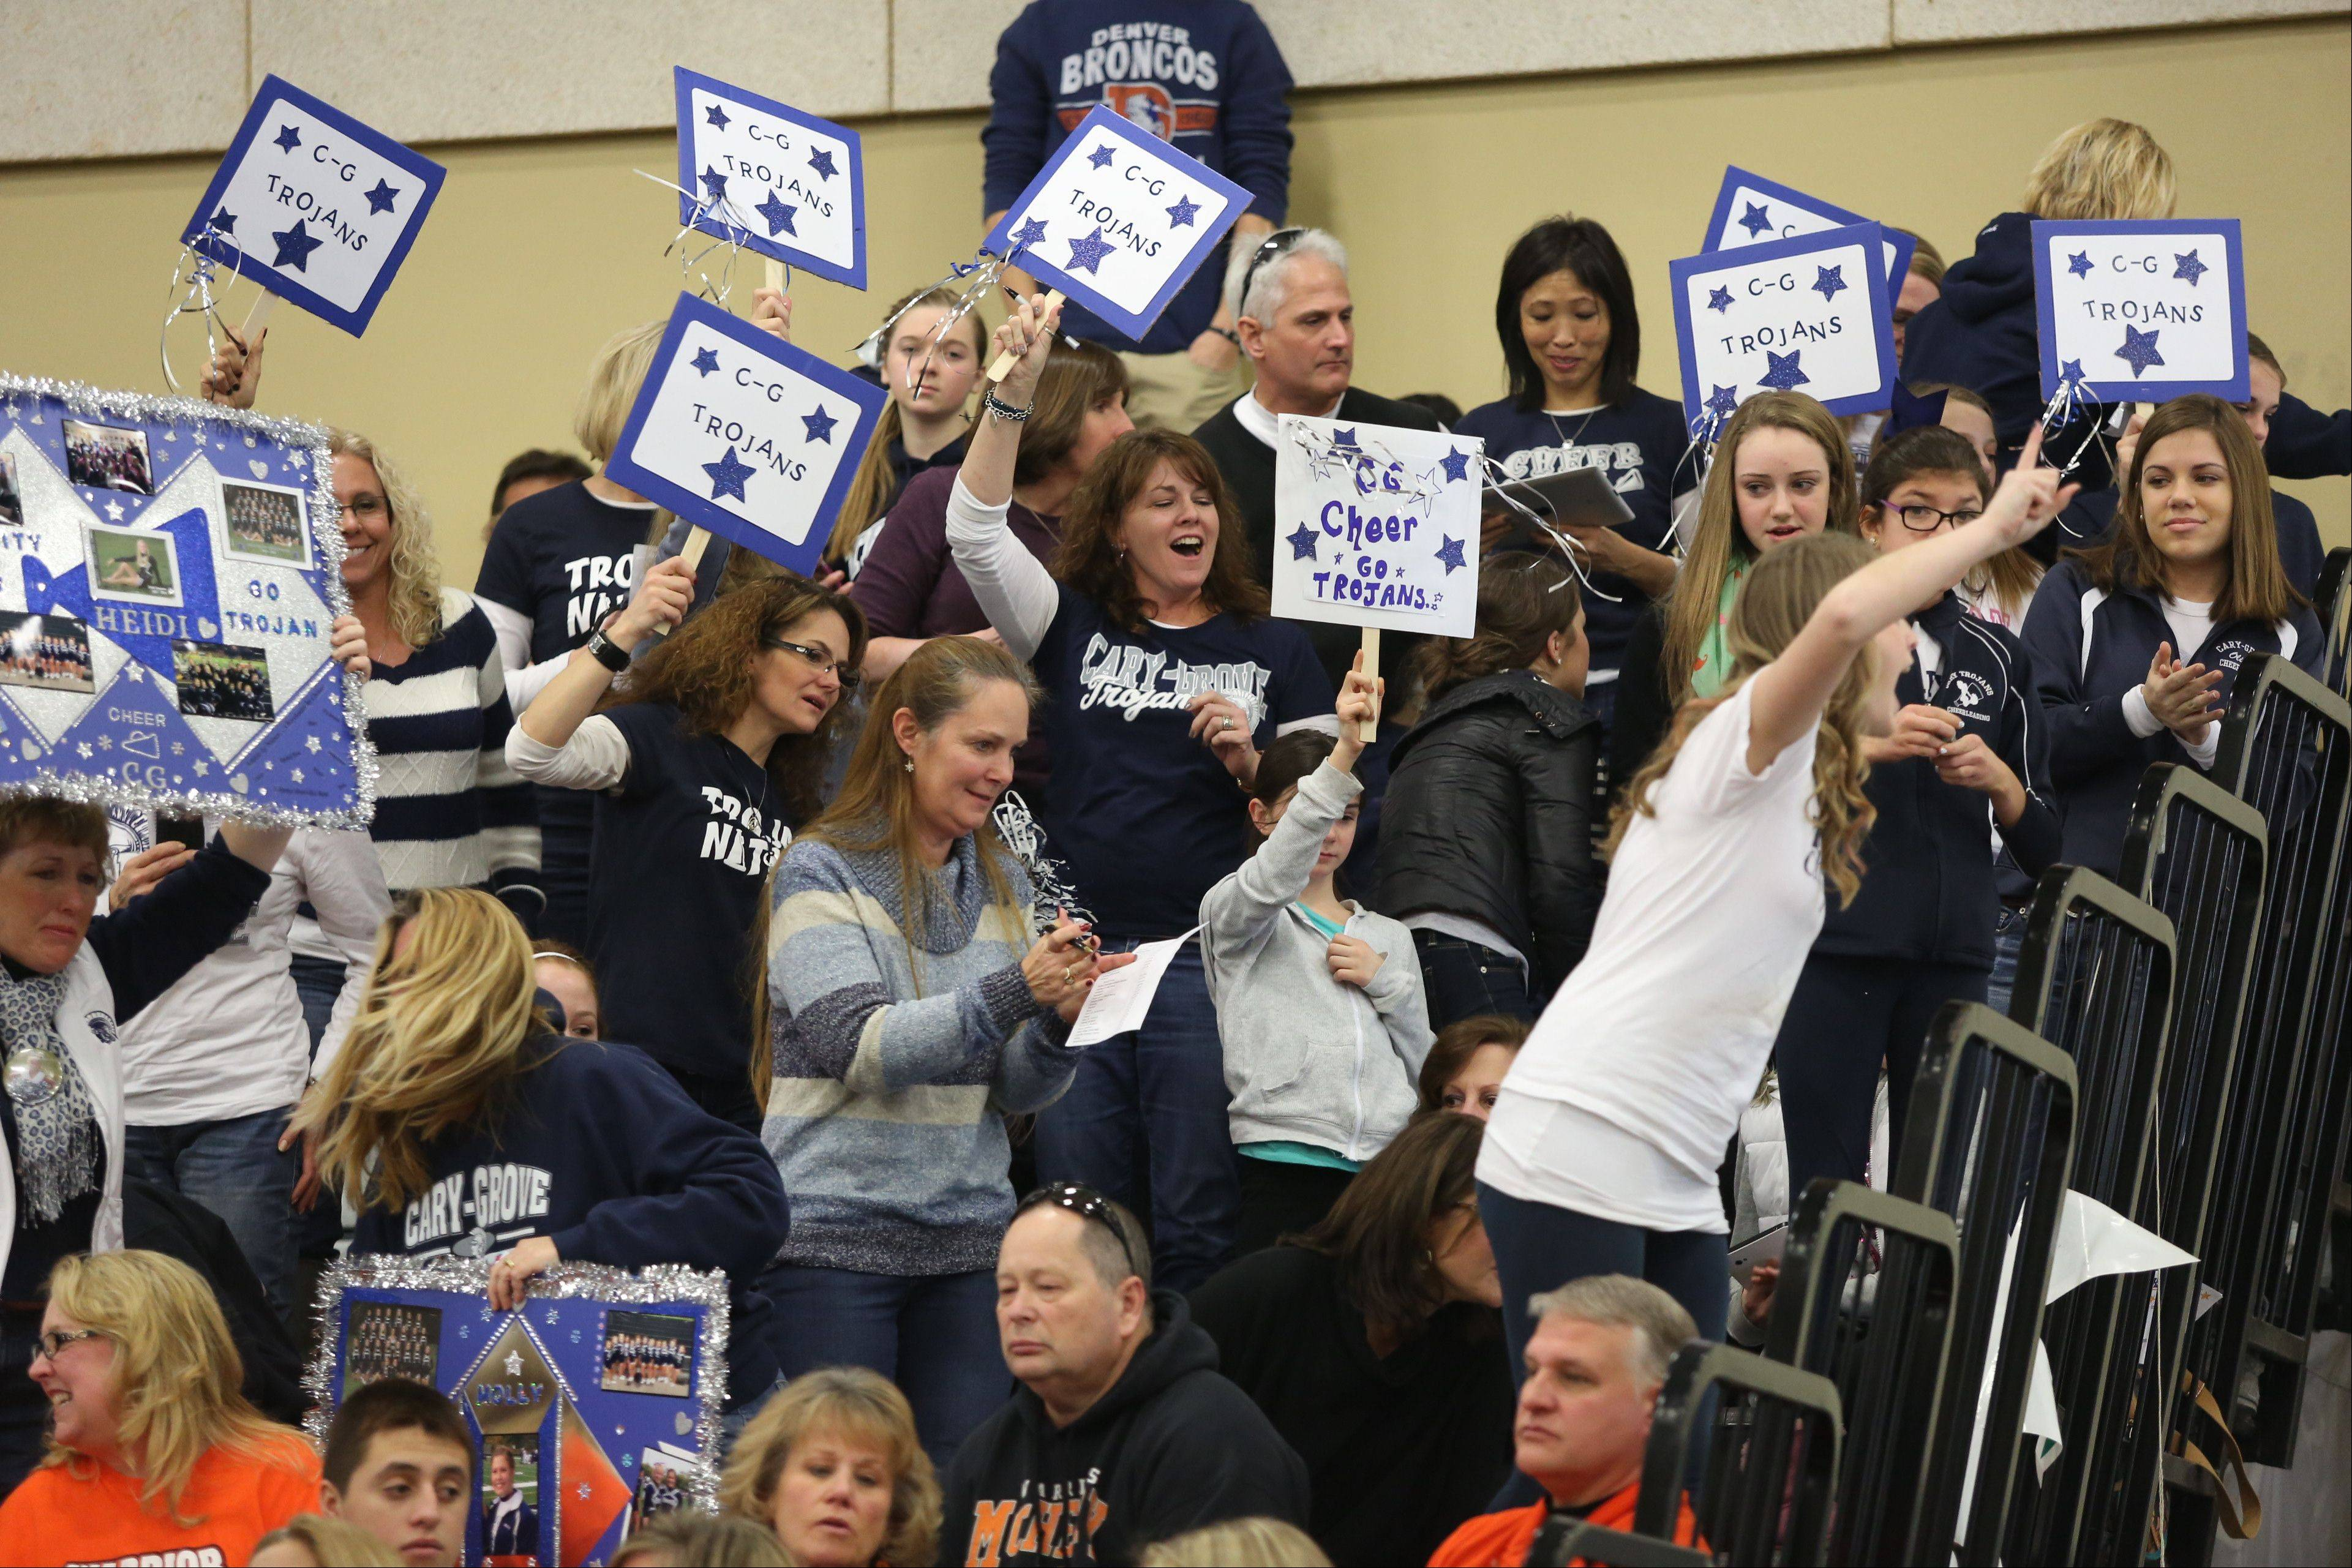 Cary-Grove High School fans cheer on the team during the IHSA Cheerleading Sectional Sunday hosted by Grayslake North High School.